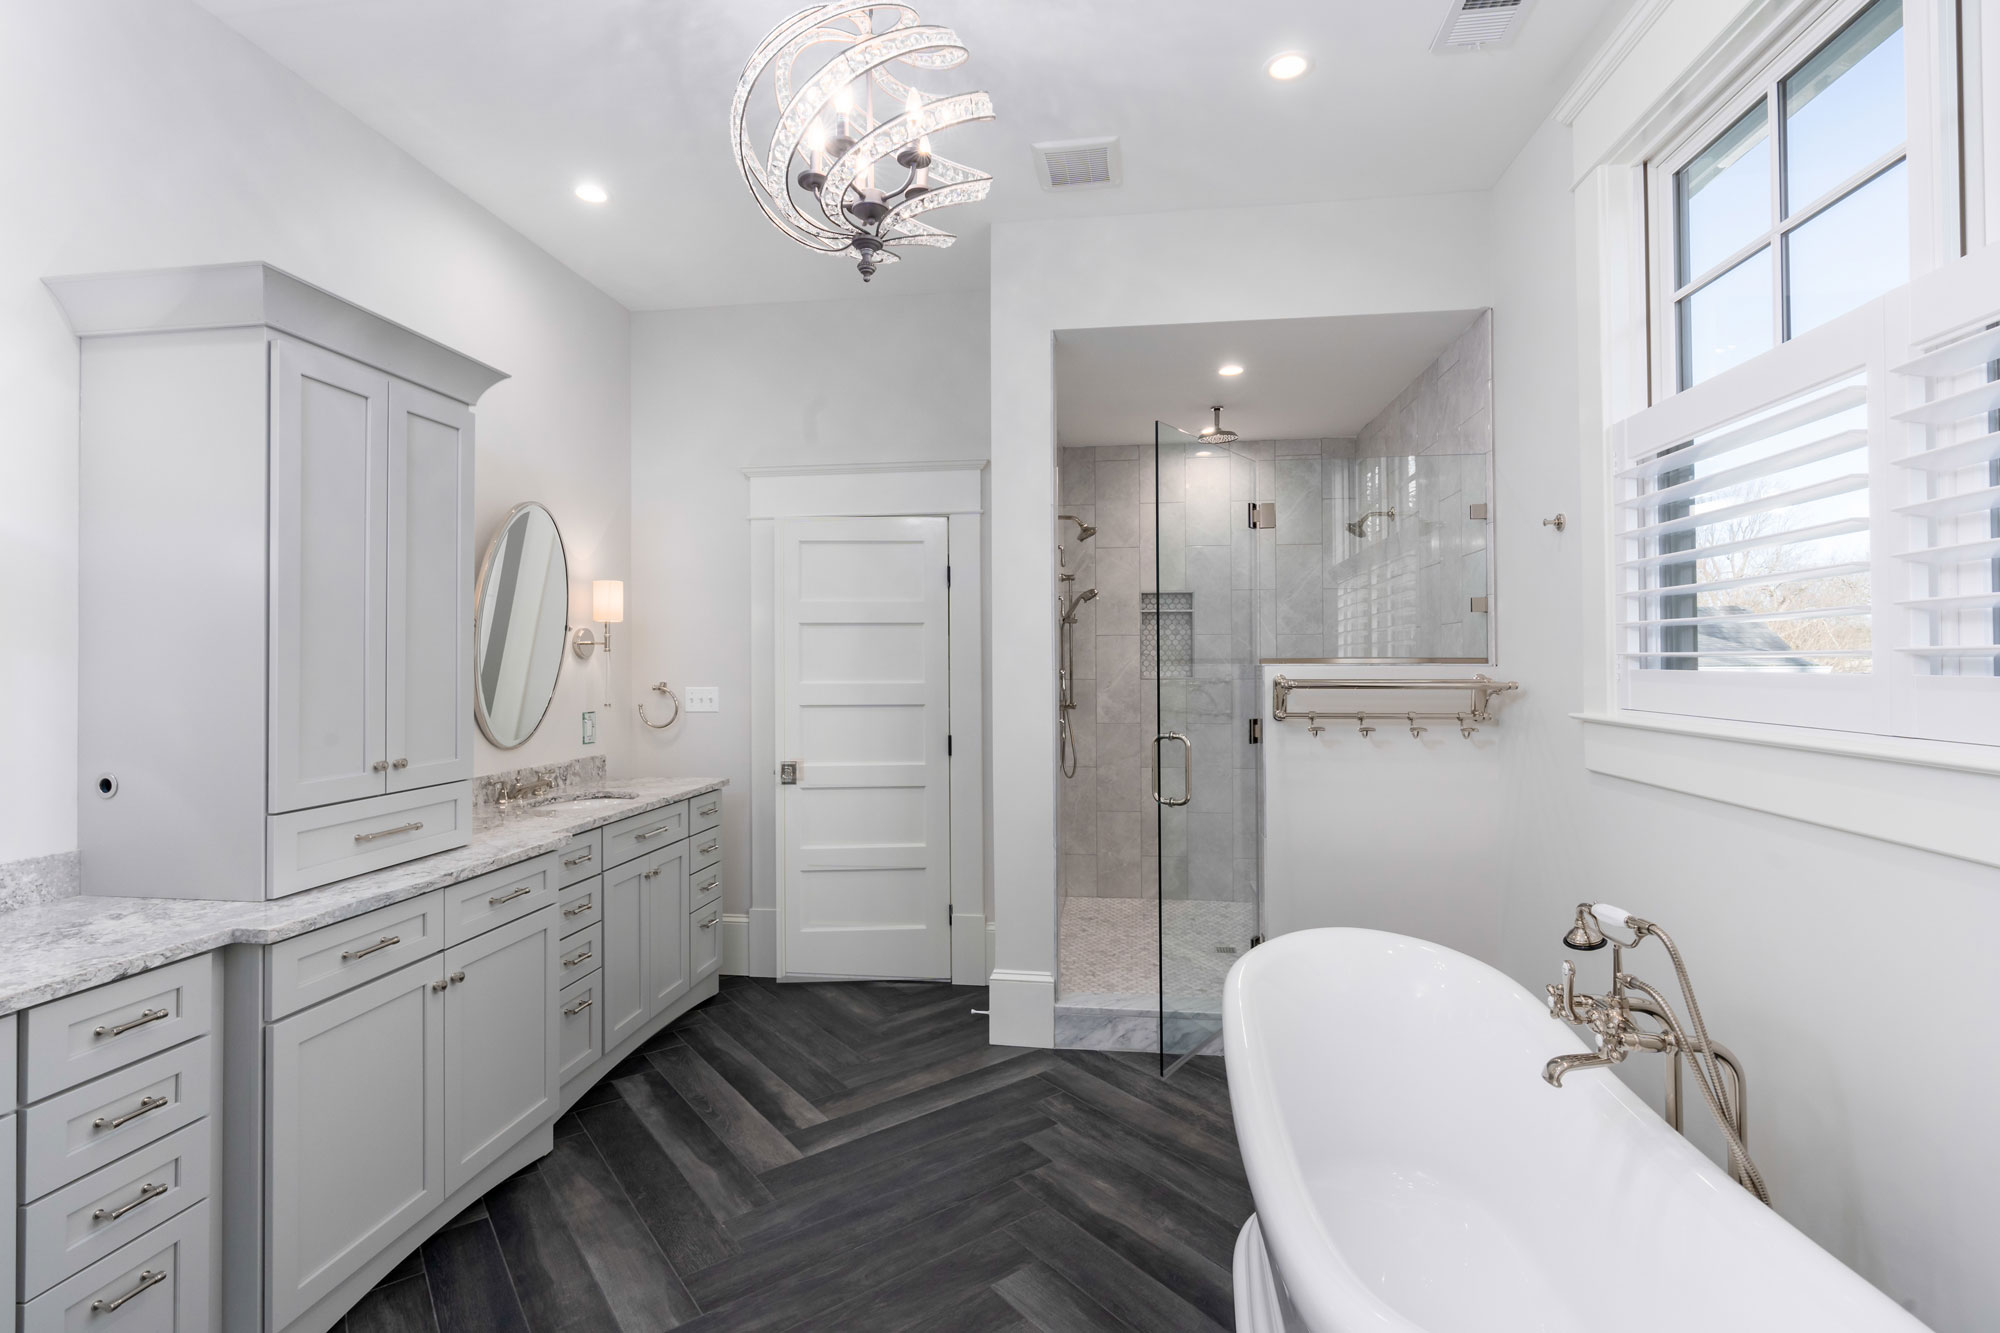 Master bath has a double thermostatic shower and free-standing tub. Heated tile floor.